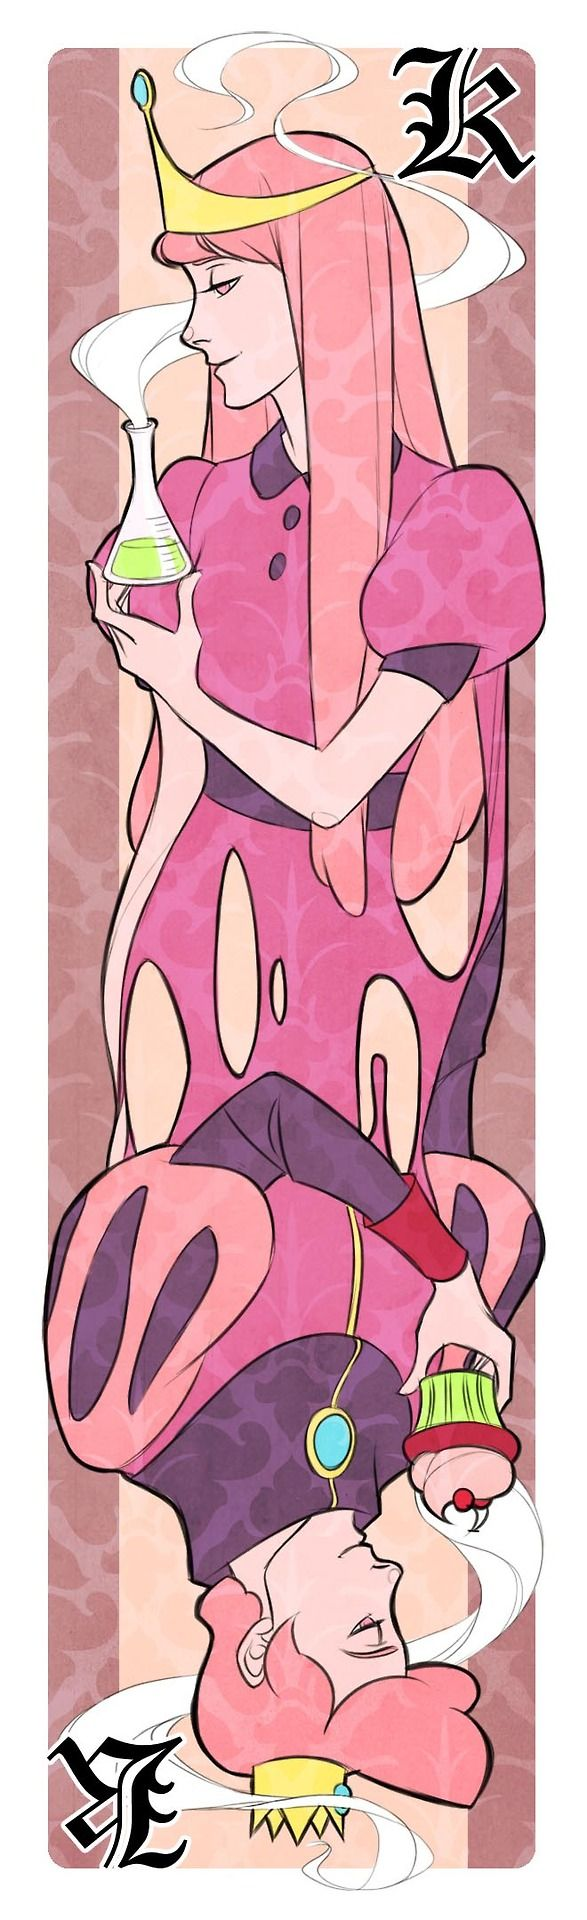 Princess Bubblegum /Prince Gumball bookmark via http://dorodraws.tumblr.com/post/52899432016/adventure-time-bookmarks